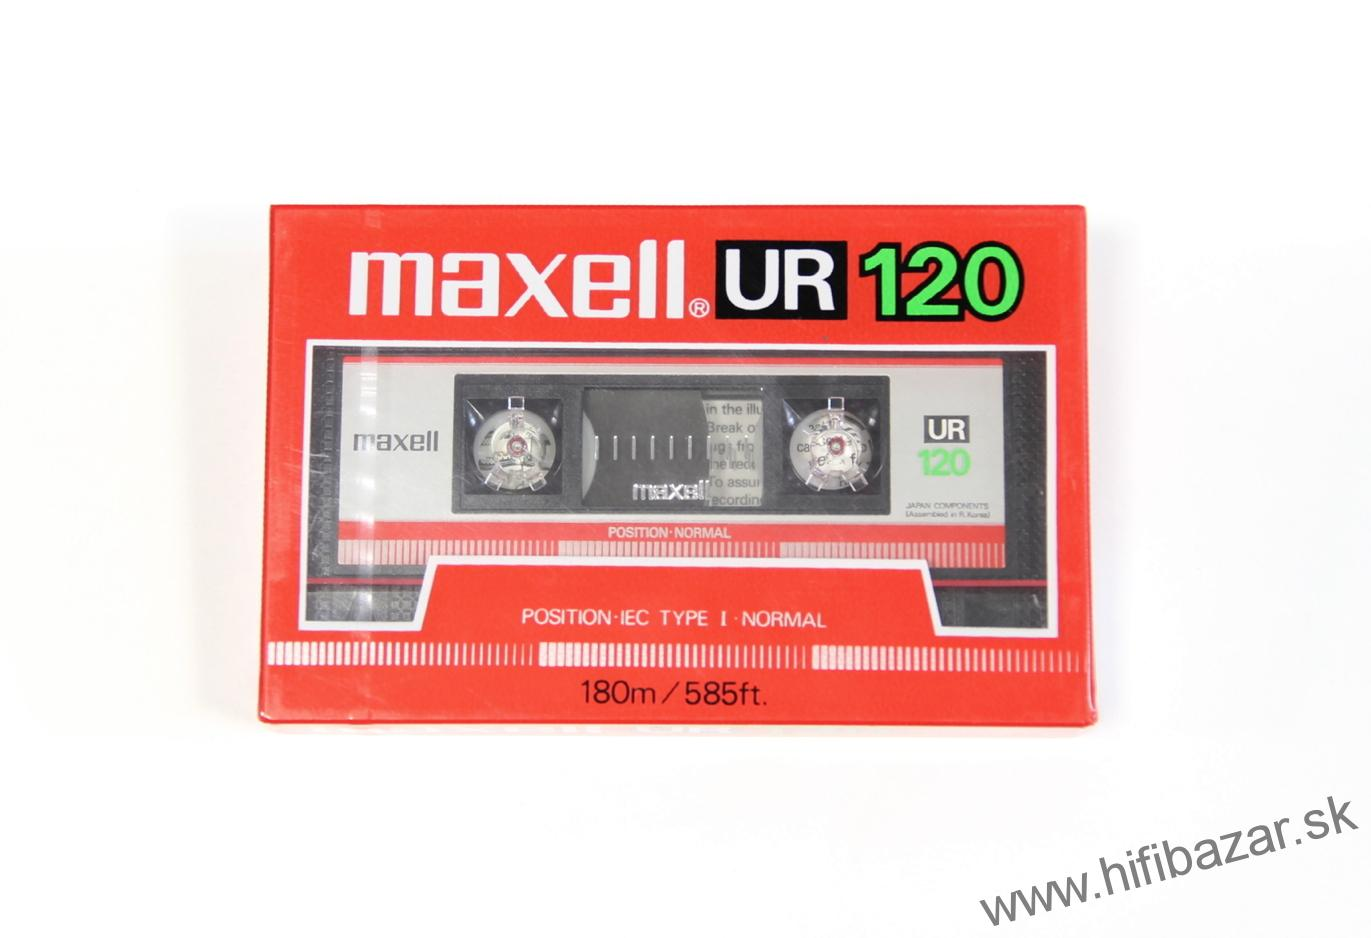 MAXELL UR-120 Position Normal